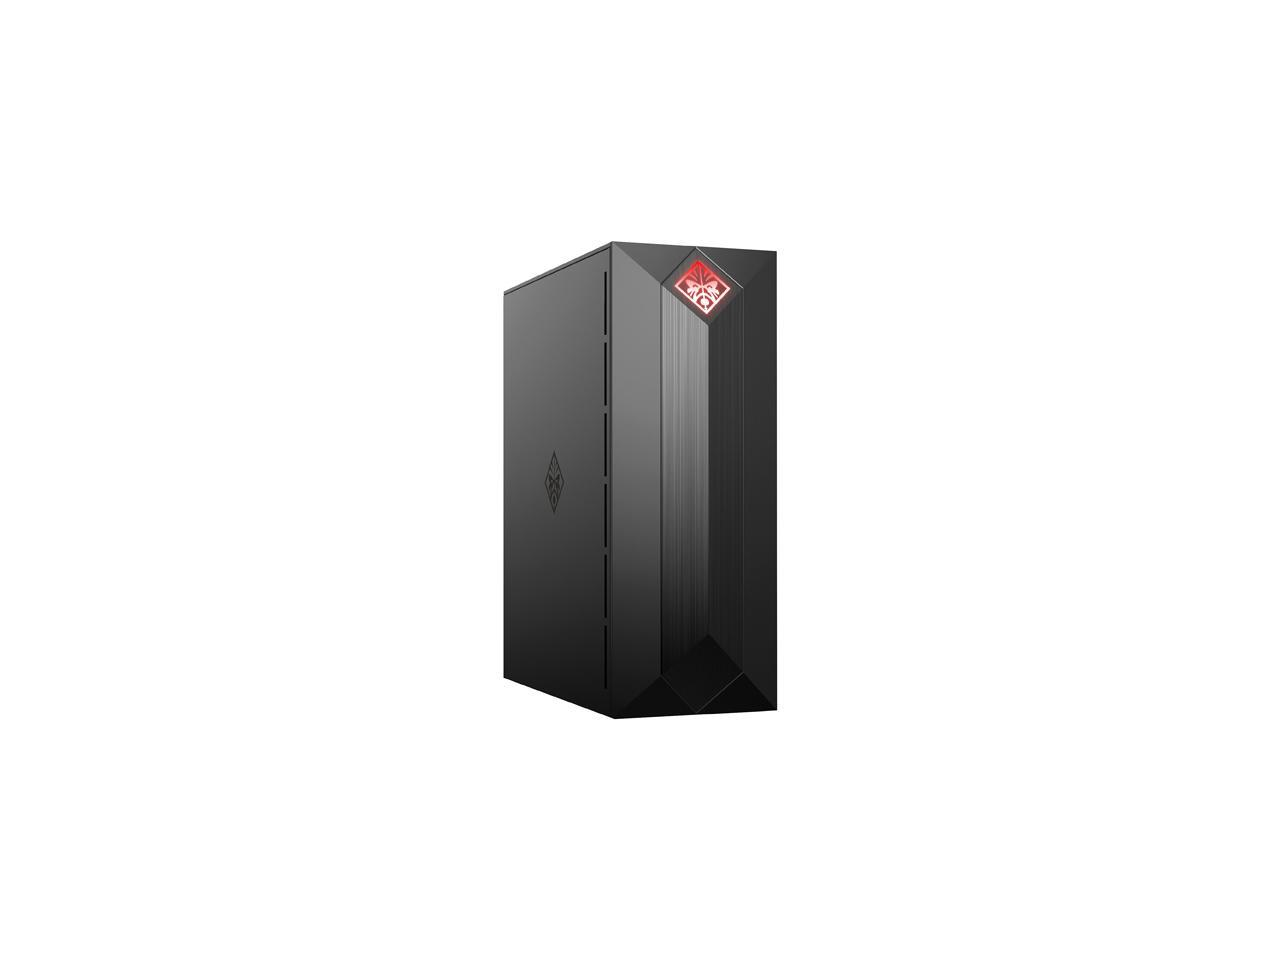 Details about HP OMEN Obelisk 875-0069 Gaming Desktop Computer - Intel Core  i3-8100 (3 60 GHz)